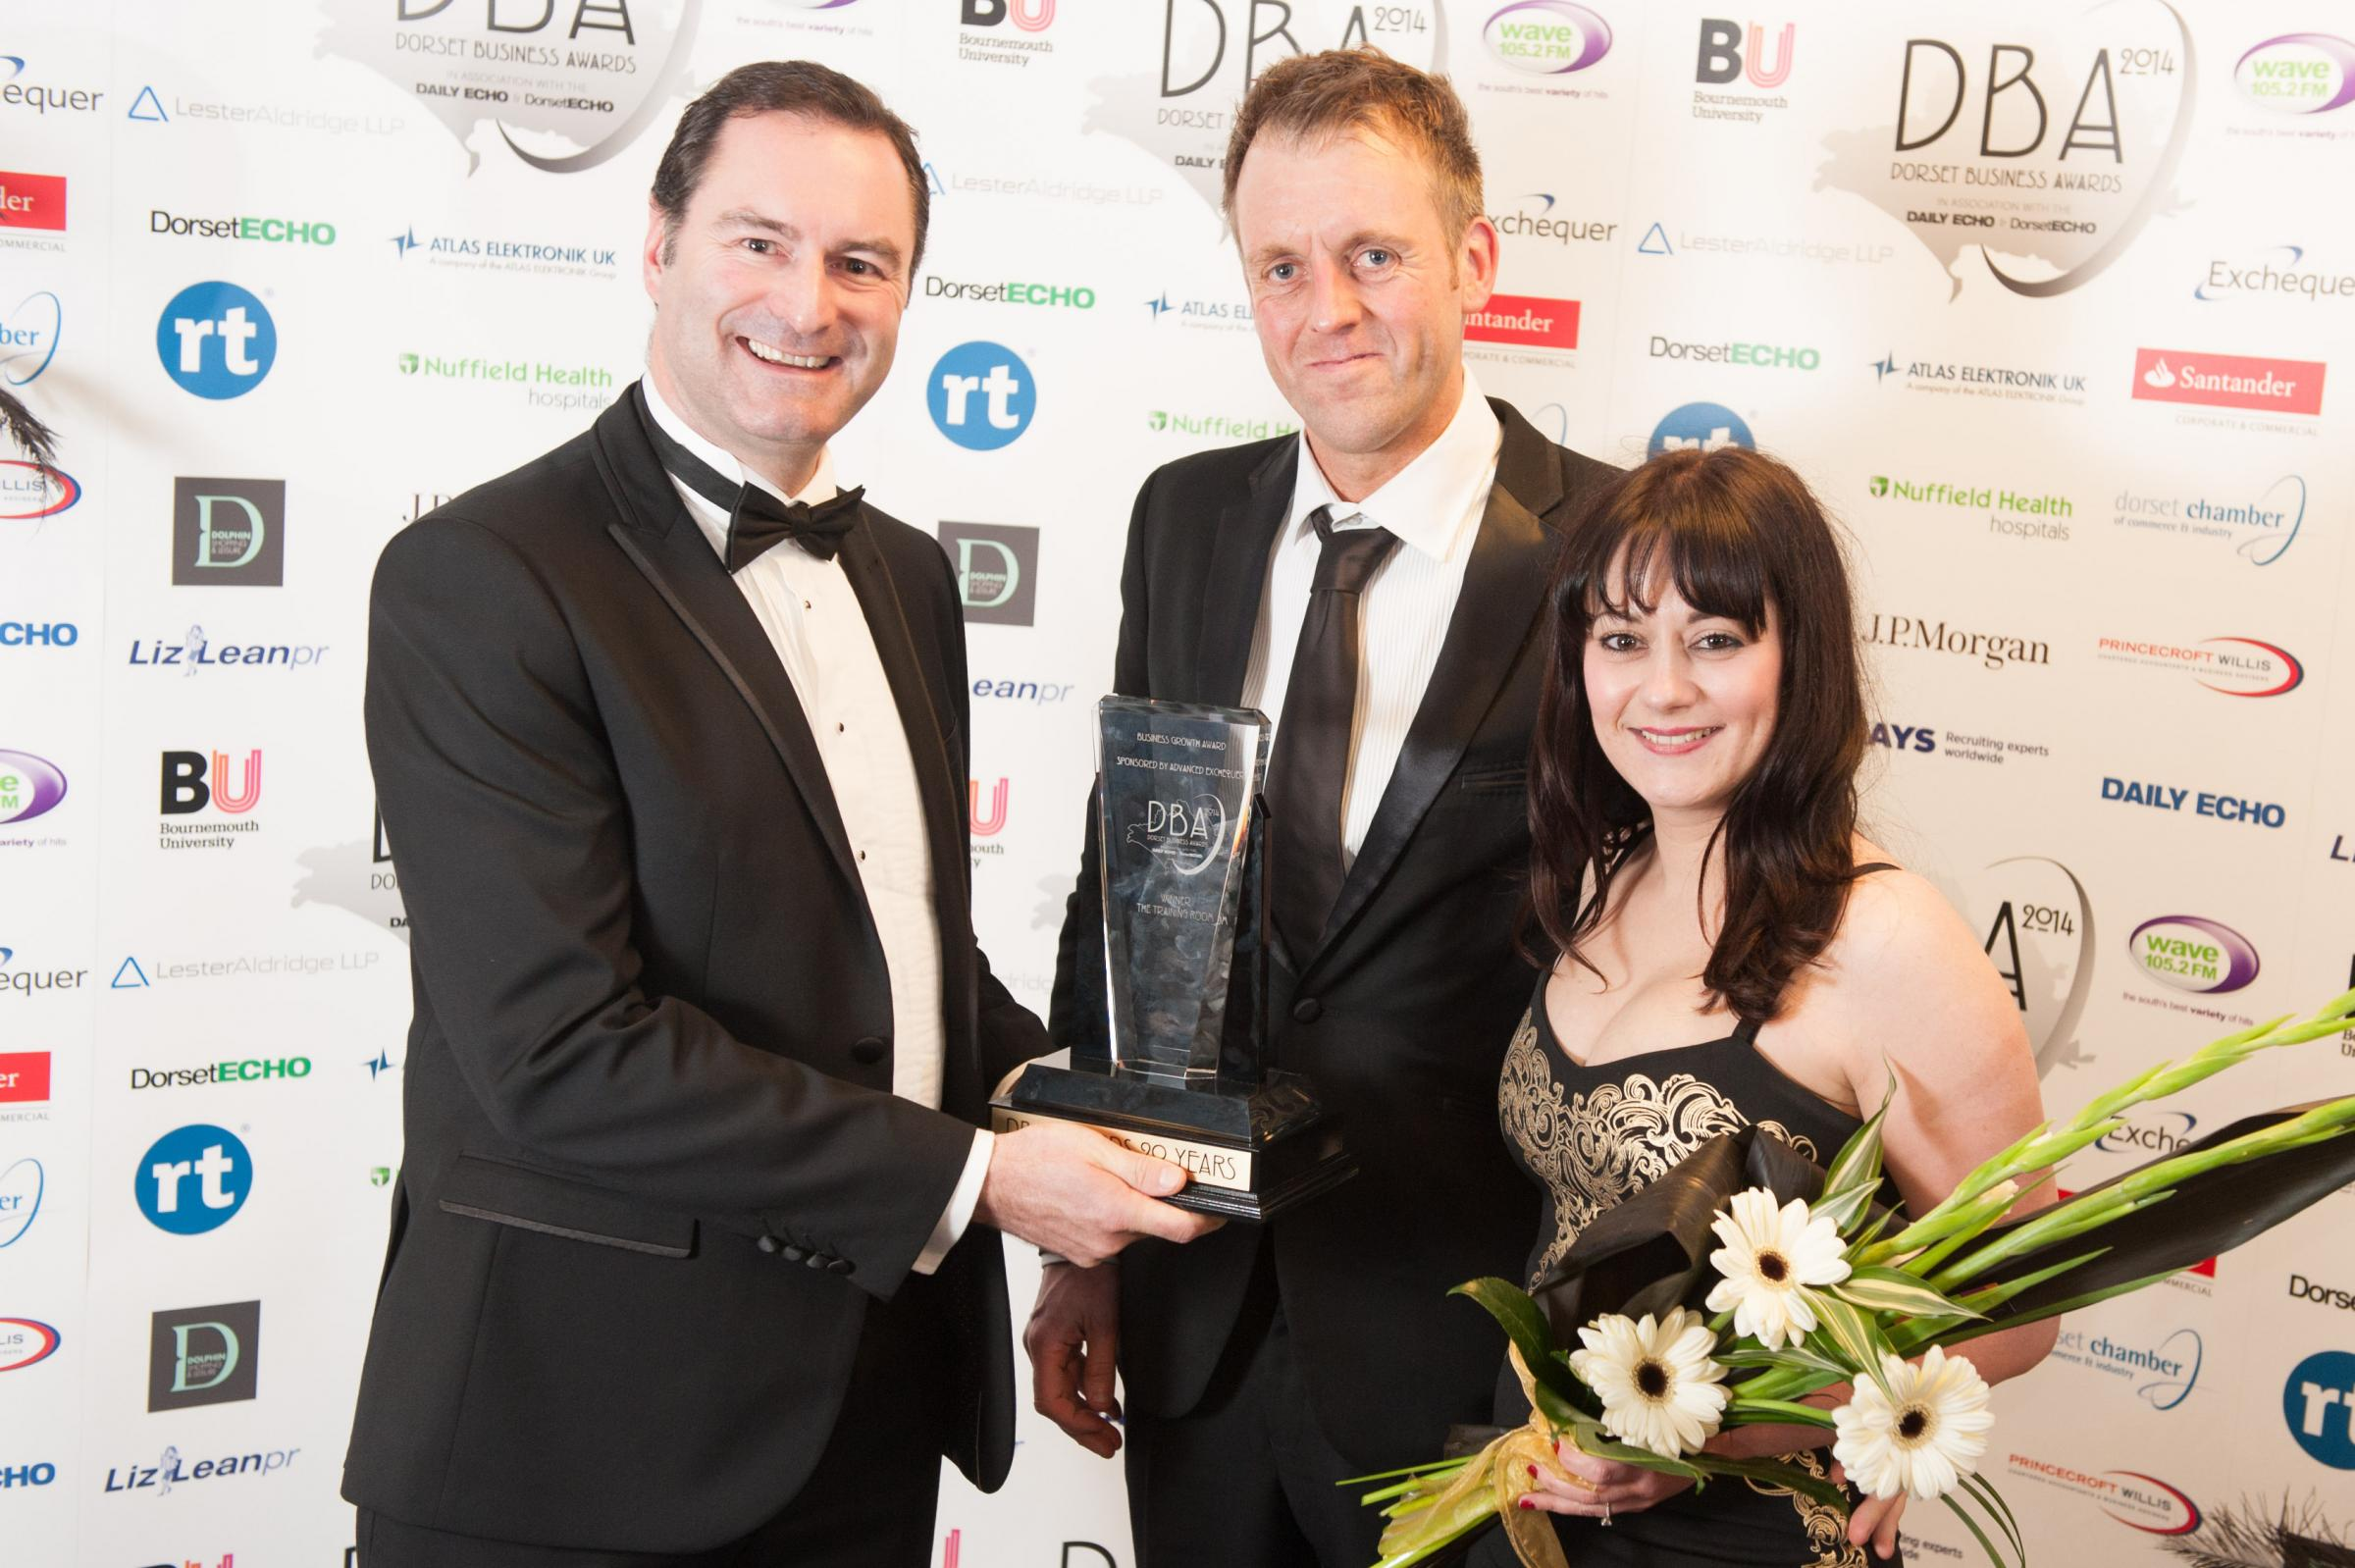 WINNERS: L-r, Greg Ford of Advanced Exchequer presents a Dorset Business Award to Jonathan Davies and Hayley Evans of the Training Room in 2014